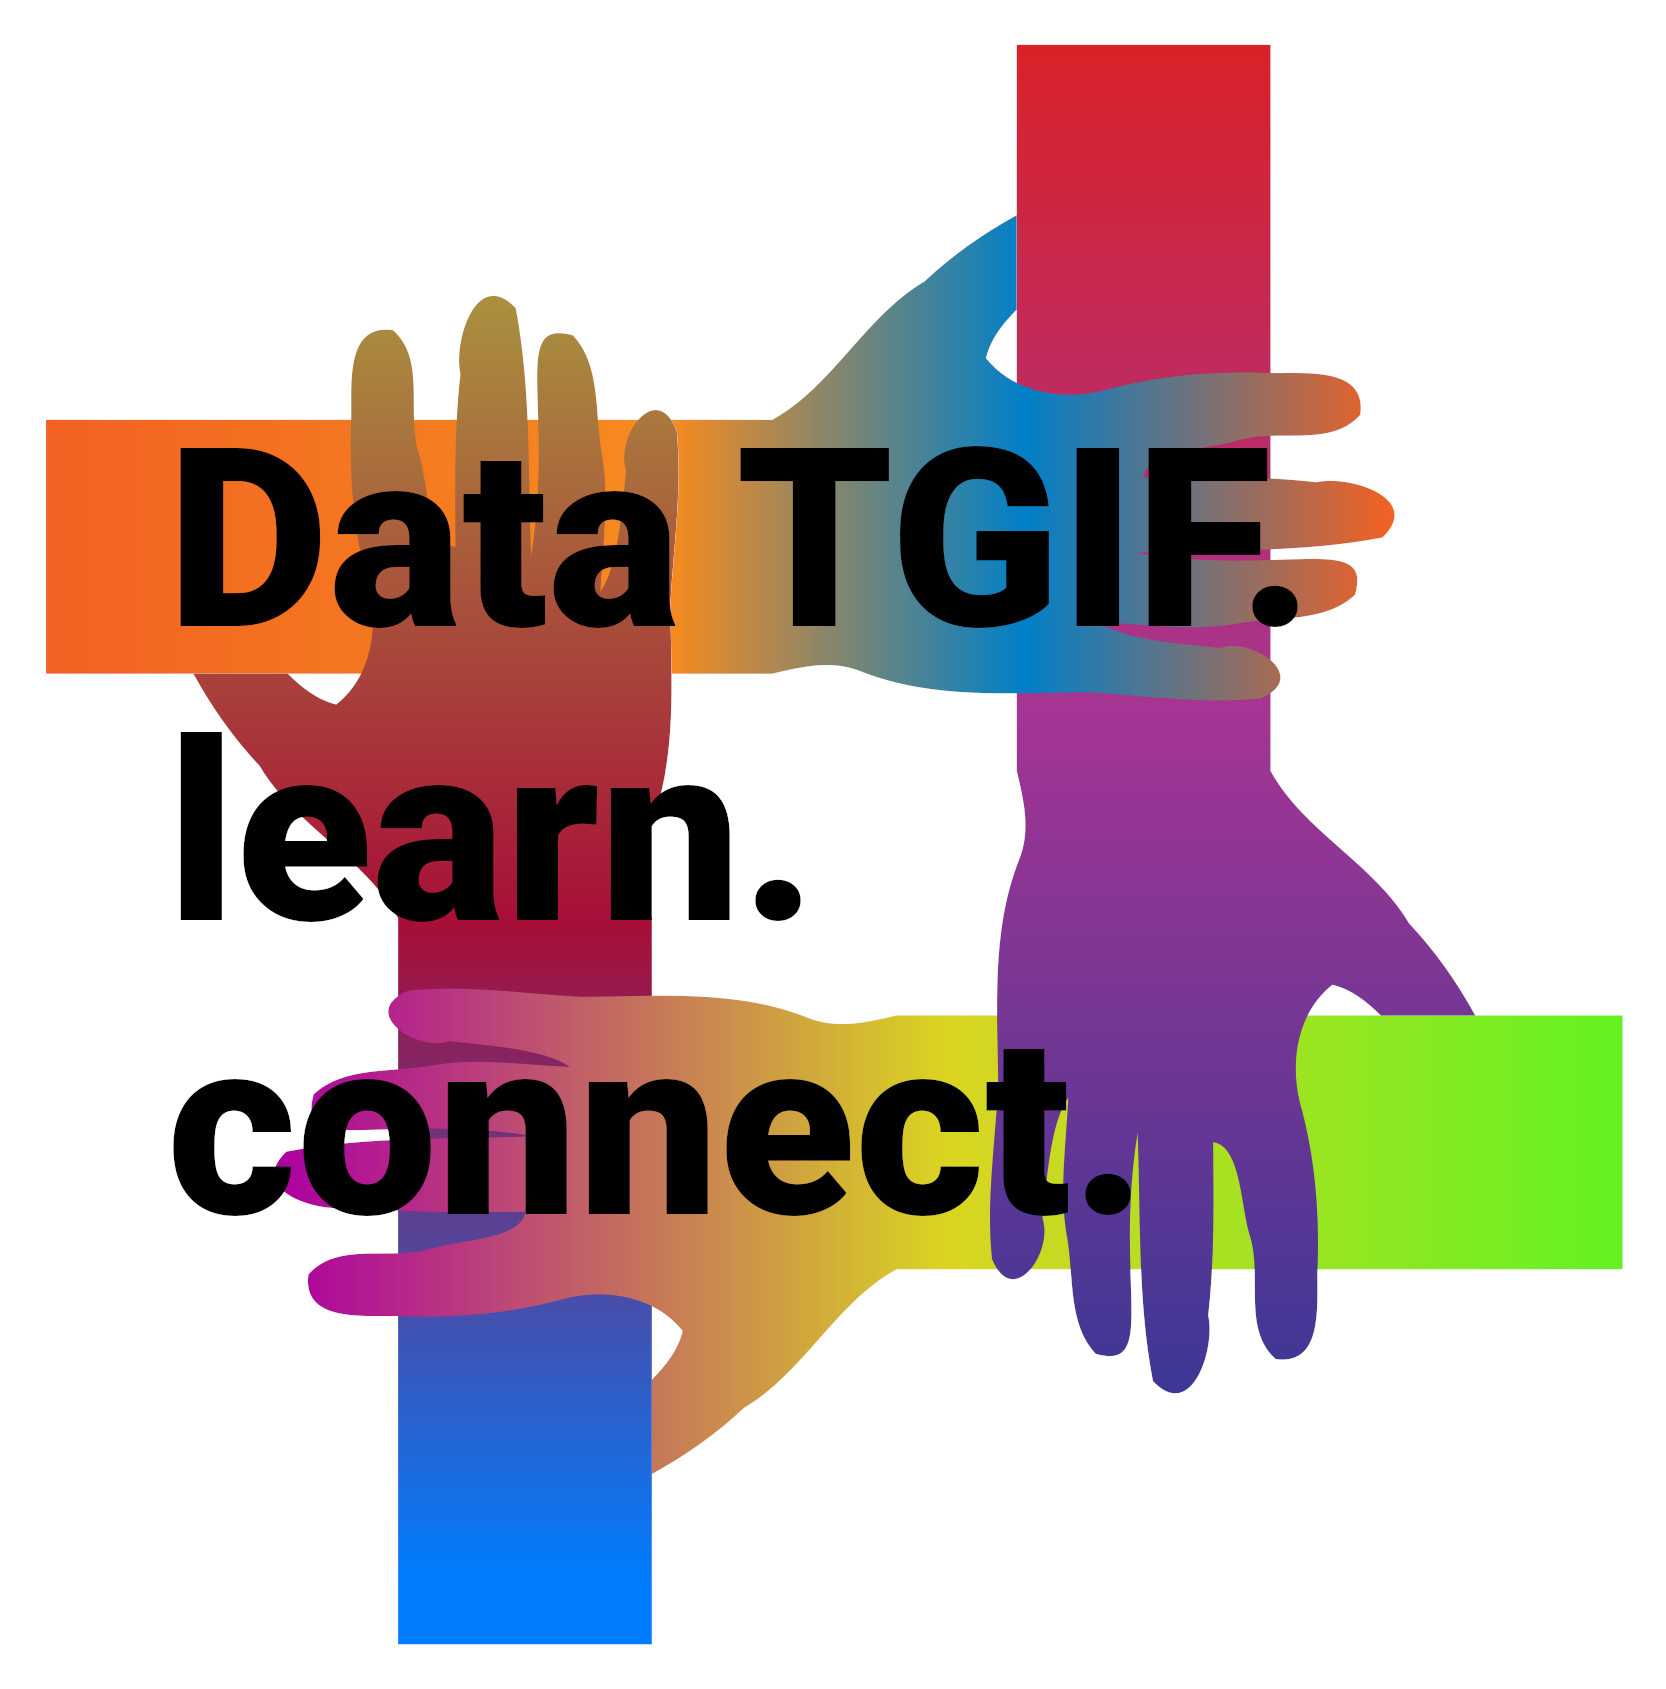 Logo of Data TGIF which represents connecting with everyone